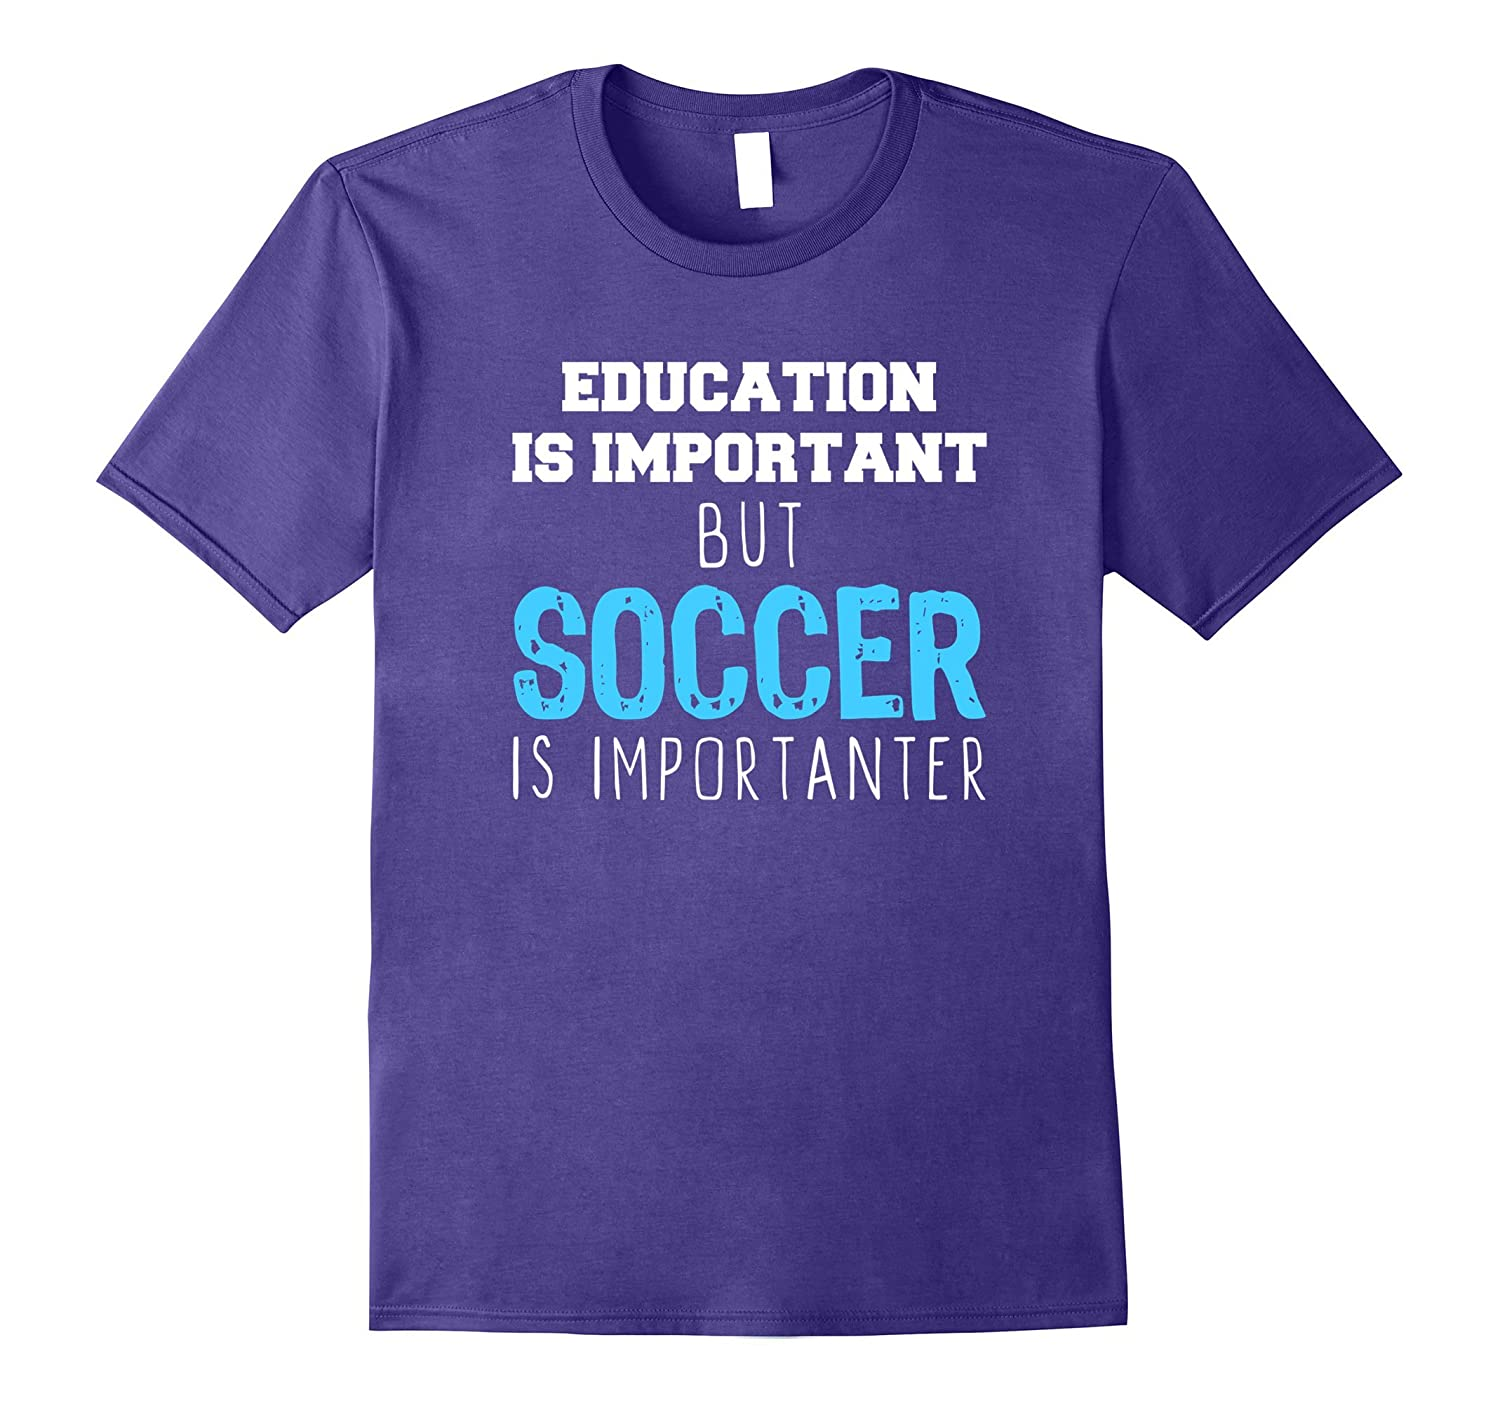 eb1c01cdff6 Education Is Important But Soccer Is Importanter T-Shirt-Vaci – Vaciuk